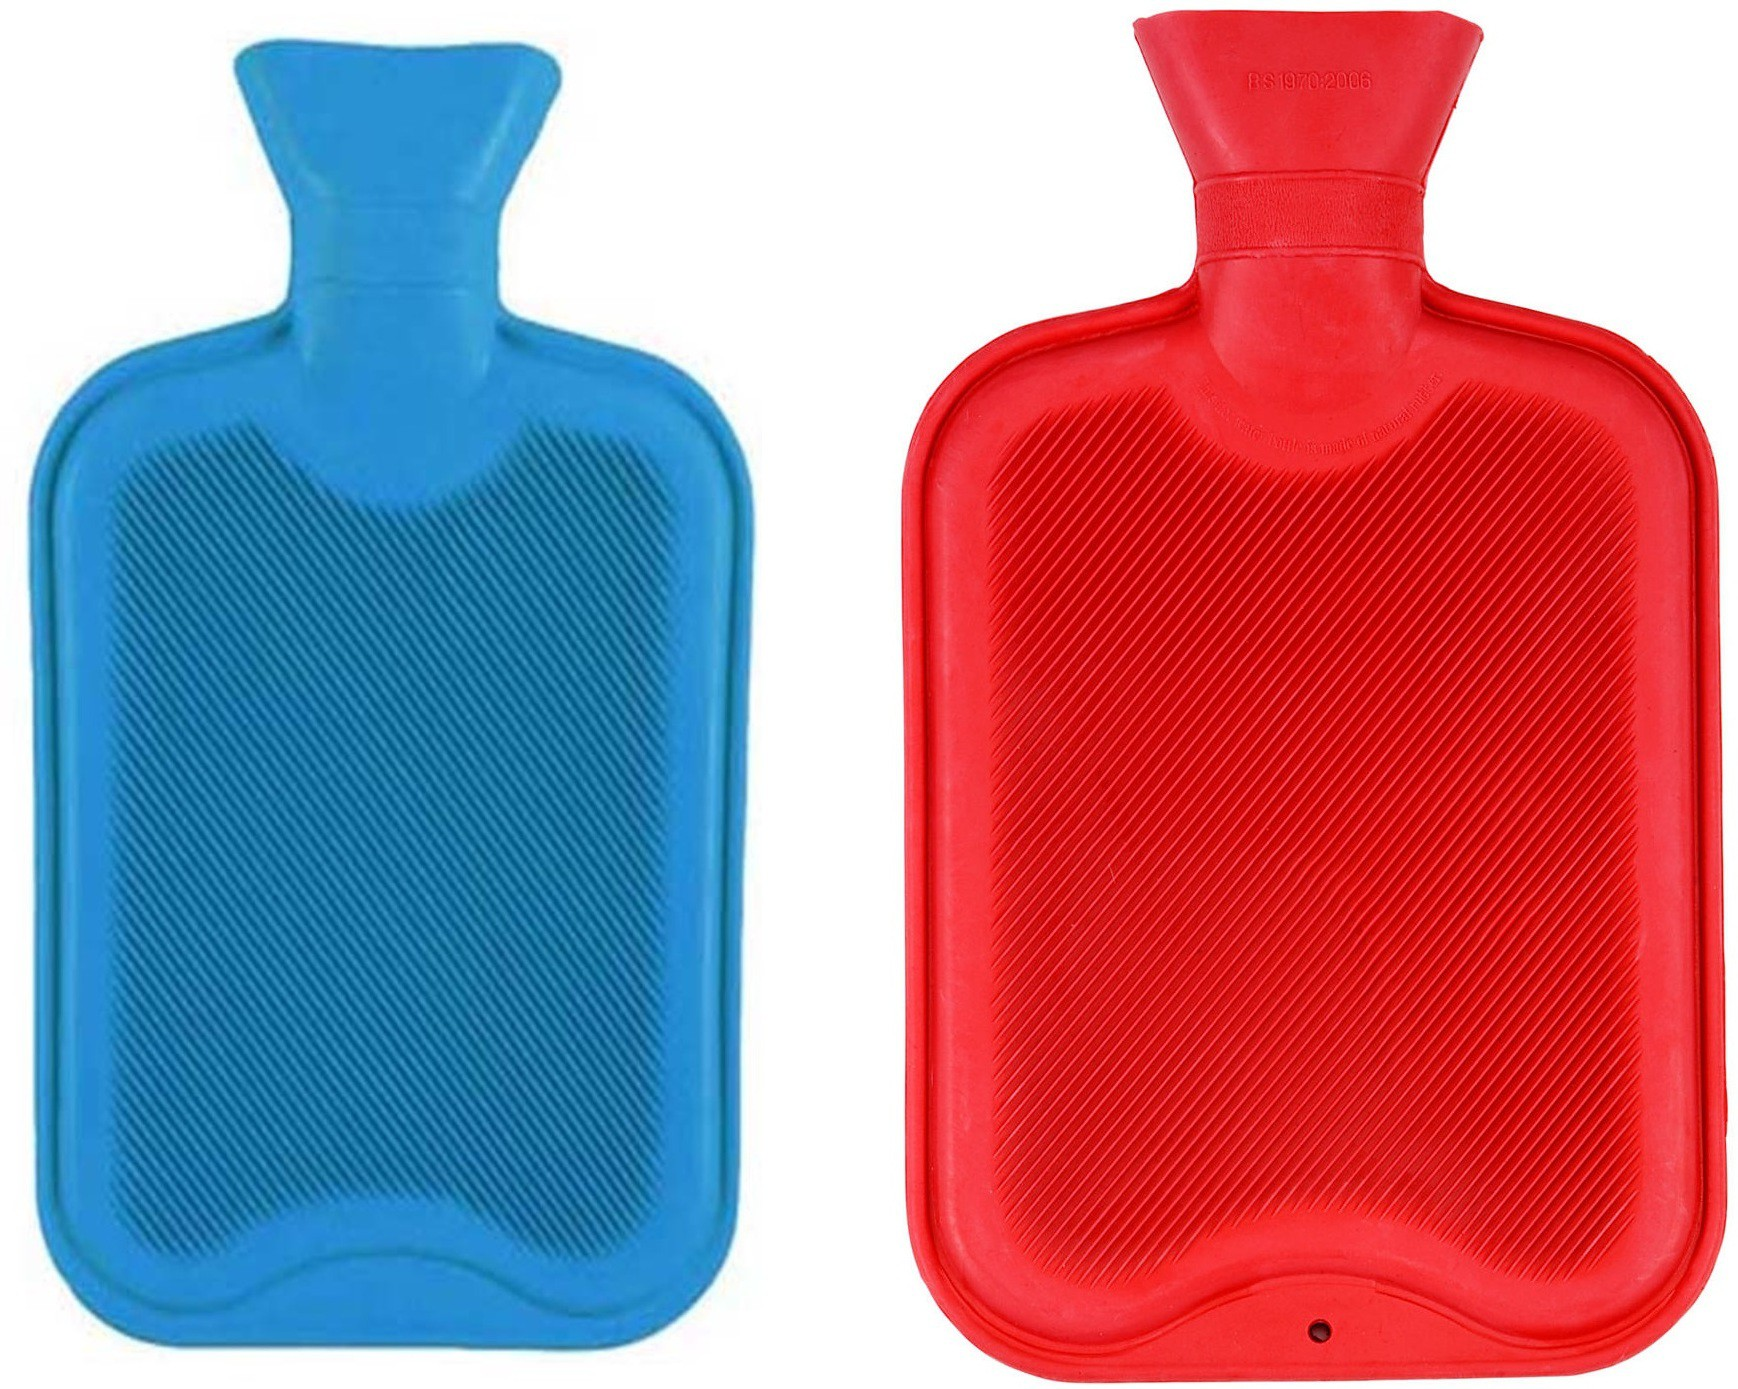 Ramco Combo Comforts Non-electrical 3 L Hot Water Bag(Red, Blue)